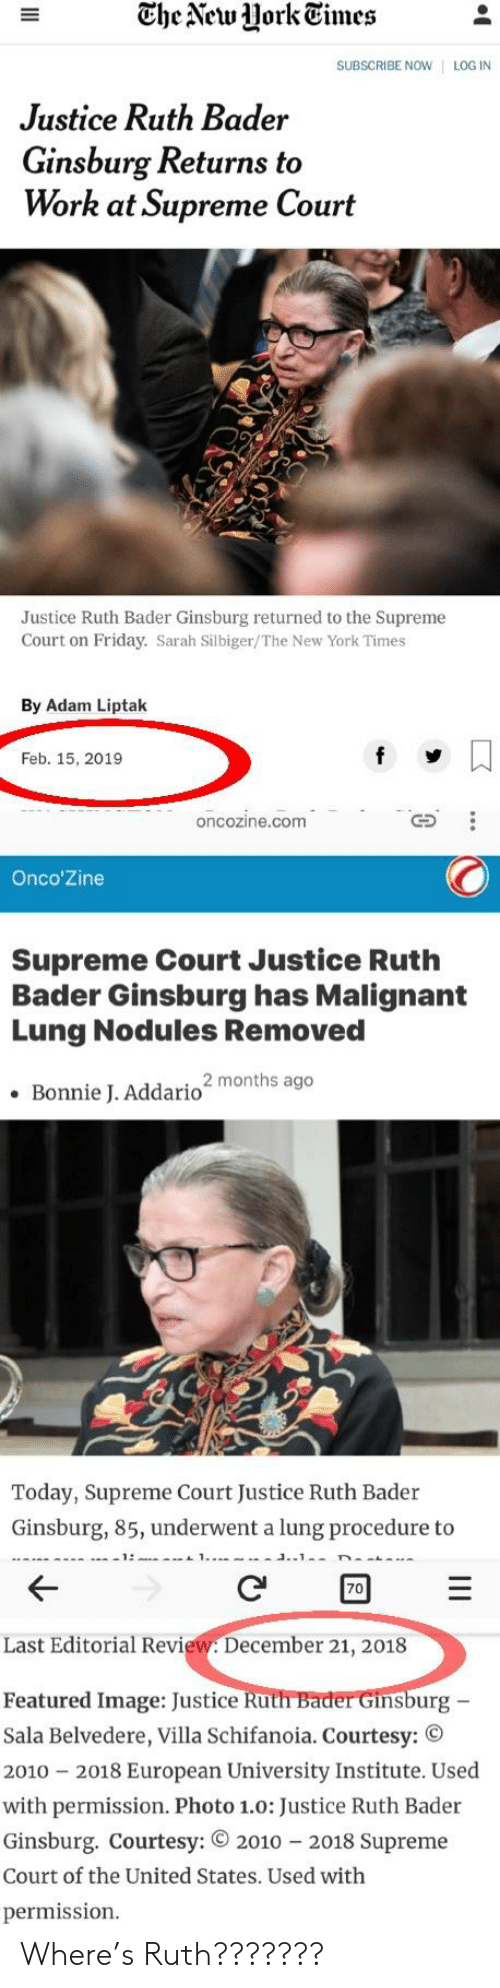 Friday, New York, and Supreme: The Veu Hork Eimes  SUBSCRIBE NOW | LOG IN  Justice Ruth Bader  Ginsburg Returns to  Work at Supreme Court  Justice Ruth Bader Ginsburg returned to the Supreme  Court on Friday. Sarah Silbiger/The New York Times  By Adam Liptak  Feb. 15, 2019  oncozine.com  Onco'Zine  Supreme Court Justice Ruth  Bader Ginsburg has Malignant  Lung Nodules Removed  Bonnie J. Addario2 months ago  Today, Supreme Court Justice Ruth Bader  Ginsburg, 85, underwent a lung procedure to  70  Last Editorial Review. December 21, 2018  Featured Image: Justice Ru  Sala Belvedere, Villa Schifanoia. Courtesy: ©  2010 2018 European University Institute. Used  with permission. Photo 1.o: Justice Ruth Bader  nsburg  Ginsburg. Courtesy: 2010 2018 Supreme  Court of the United States. Used with  permission. Where's Ruth???????